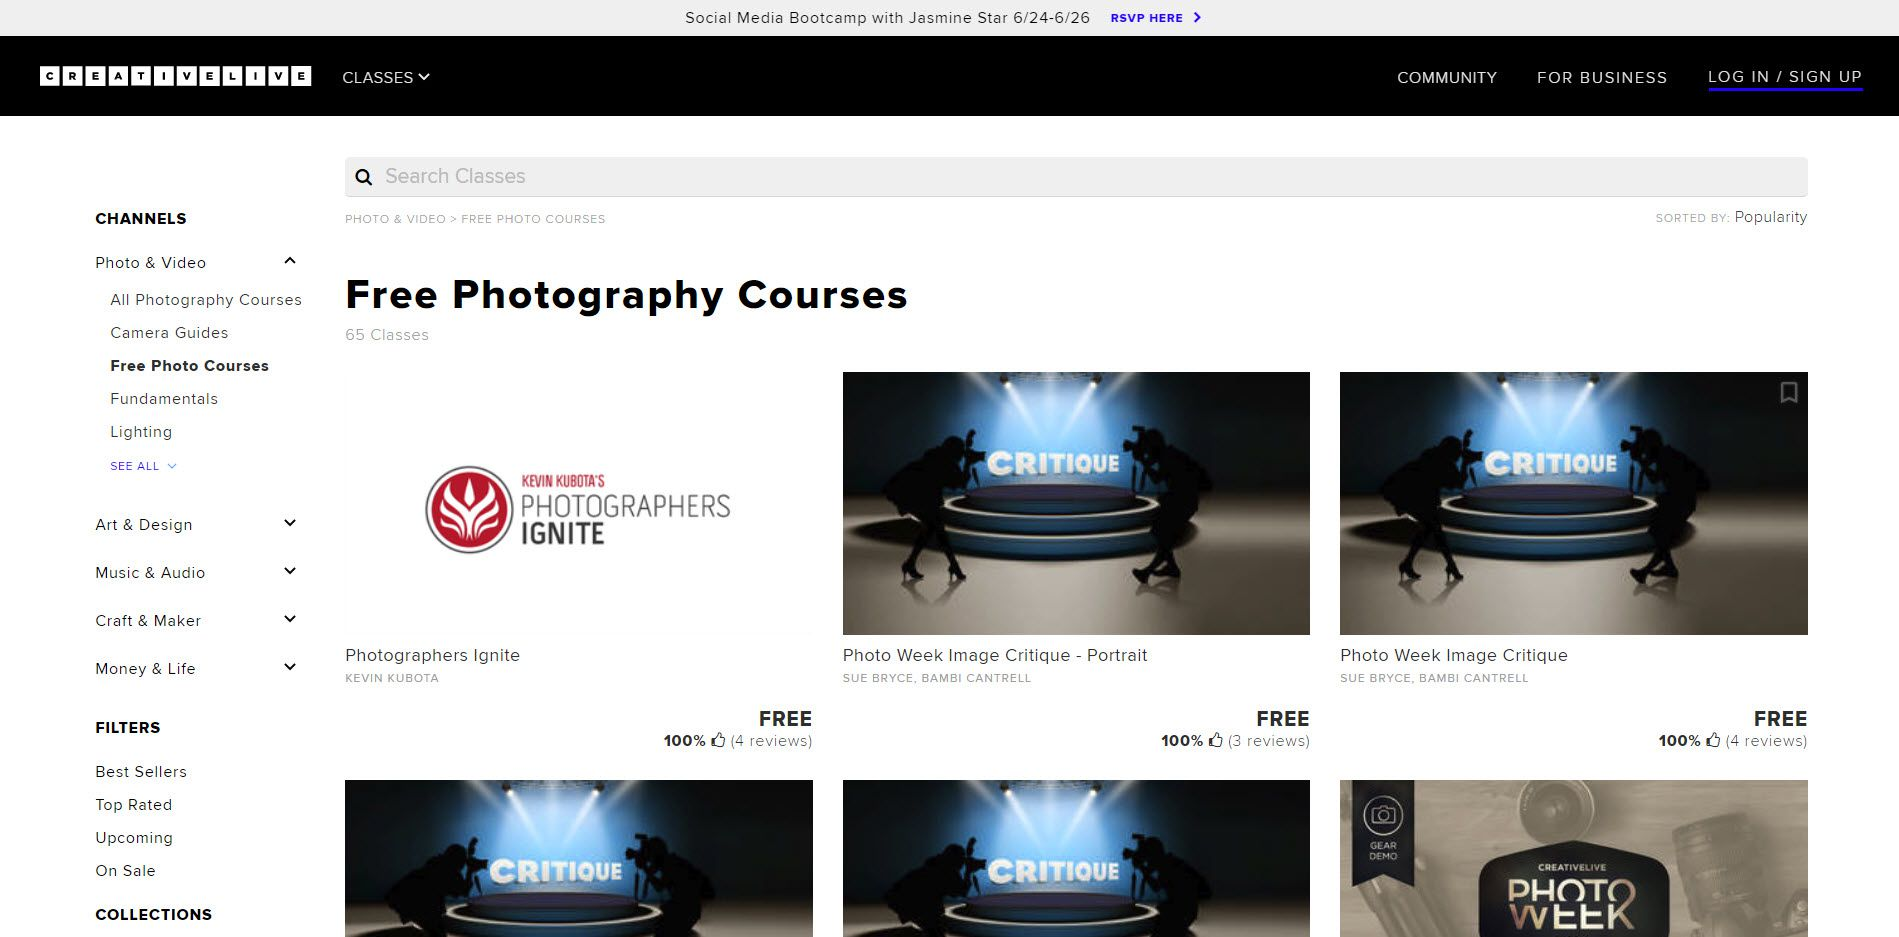 The CreativeLive website for free photography classes.